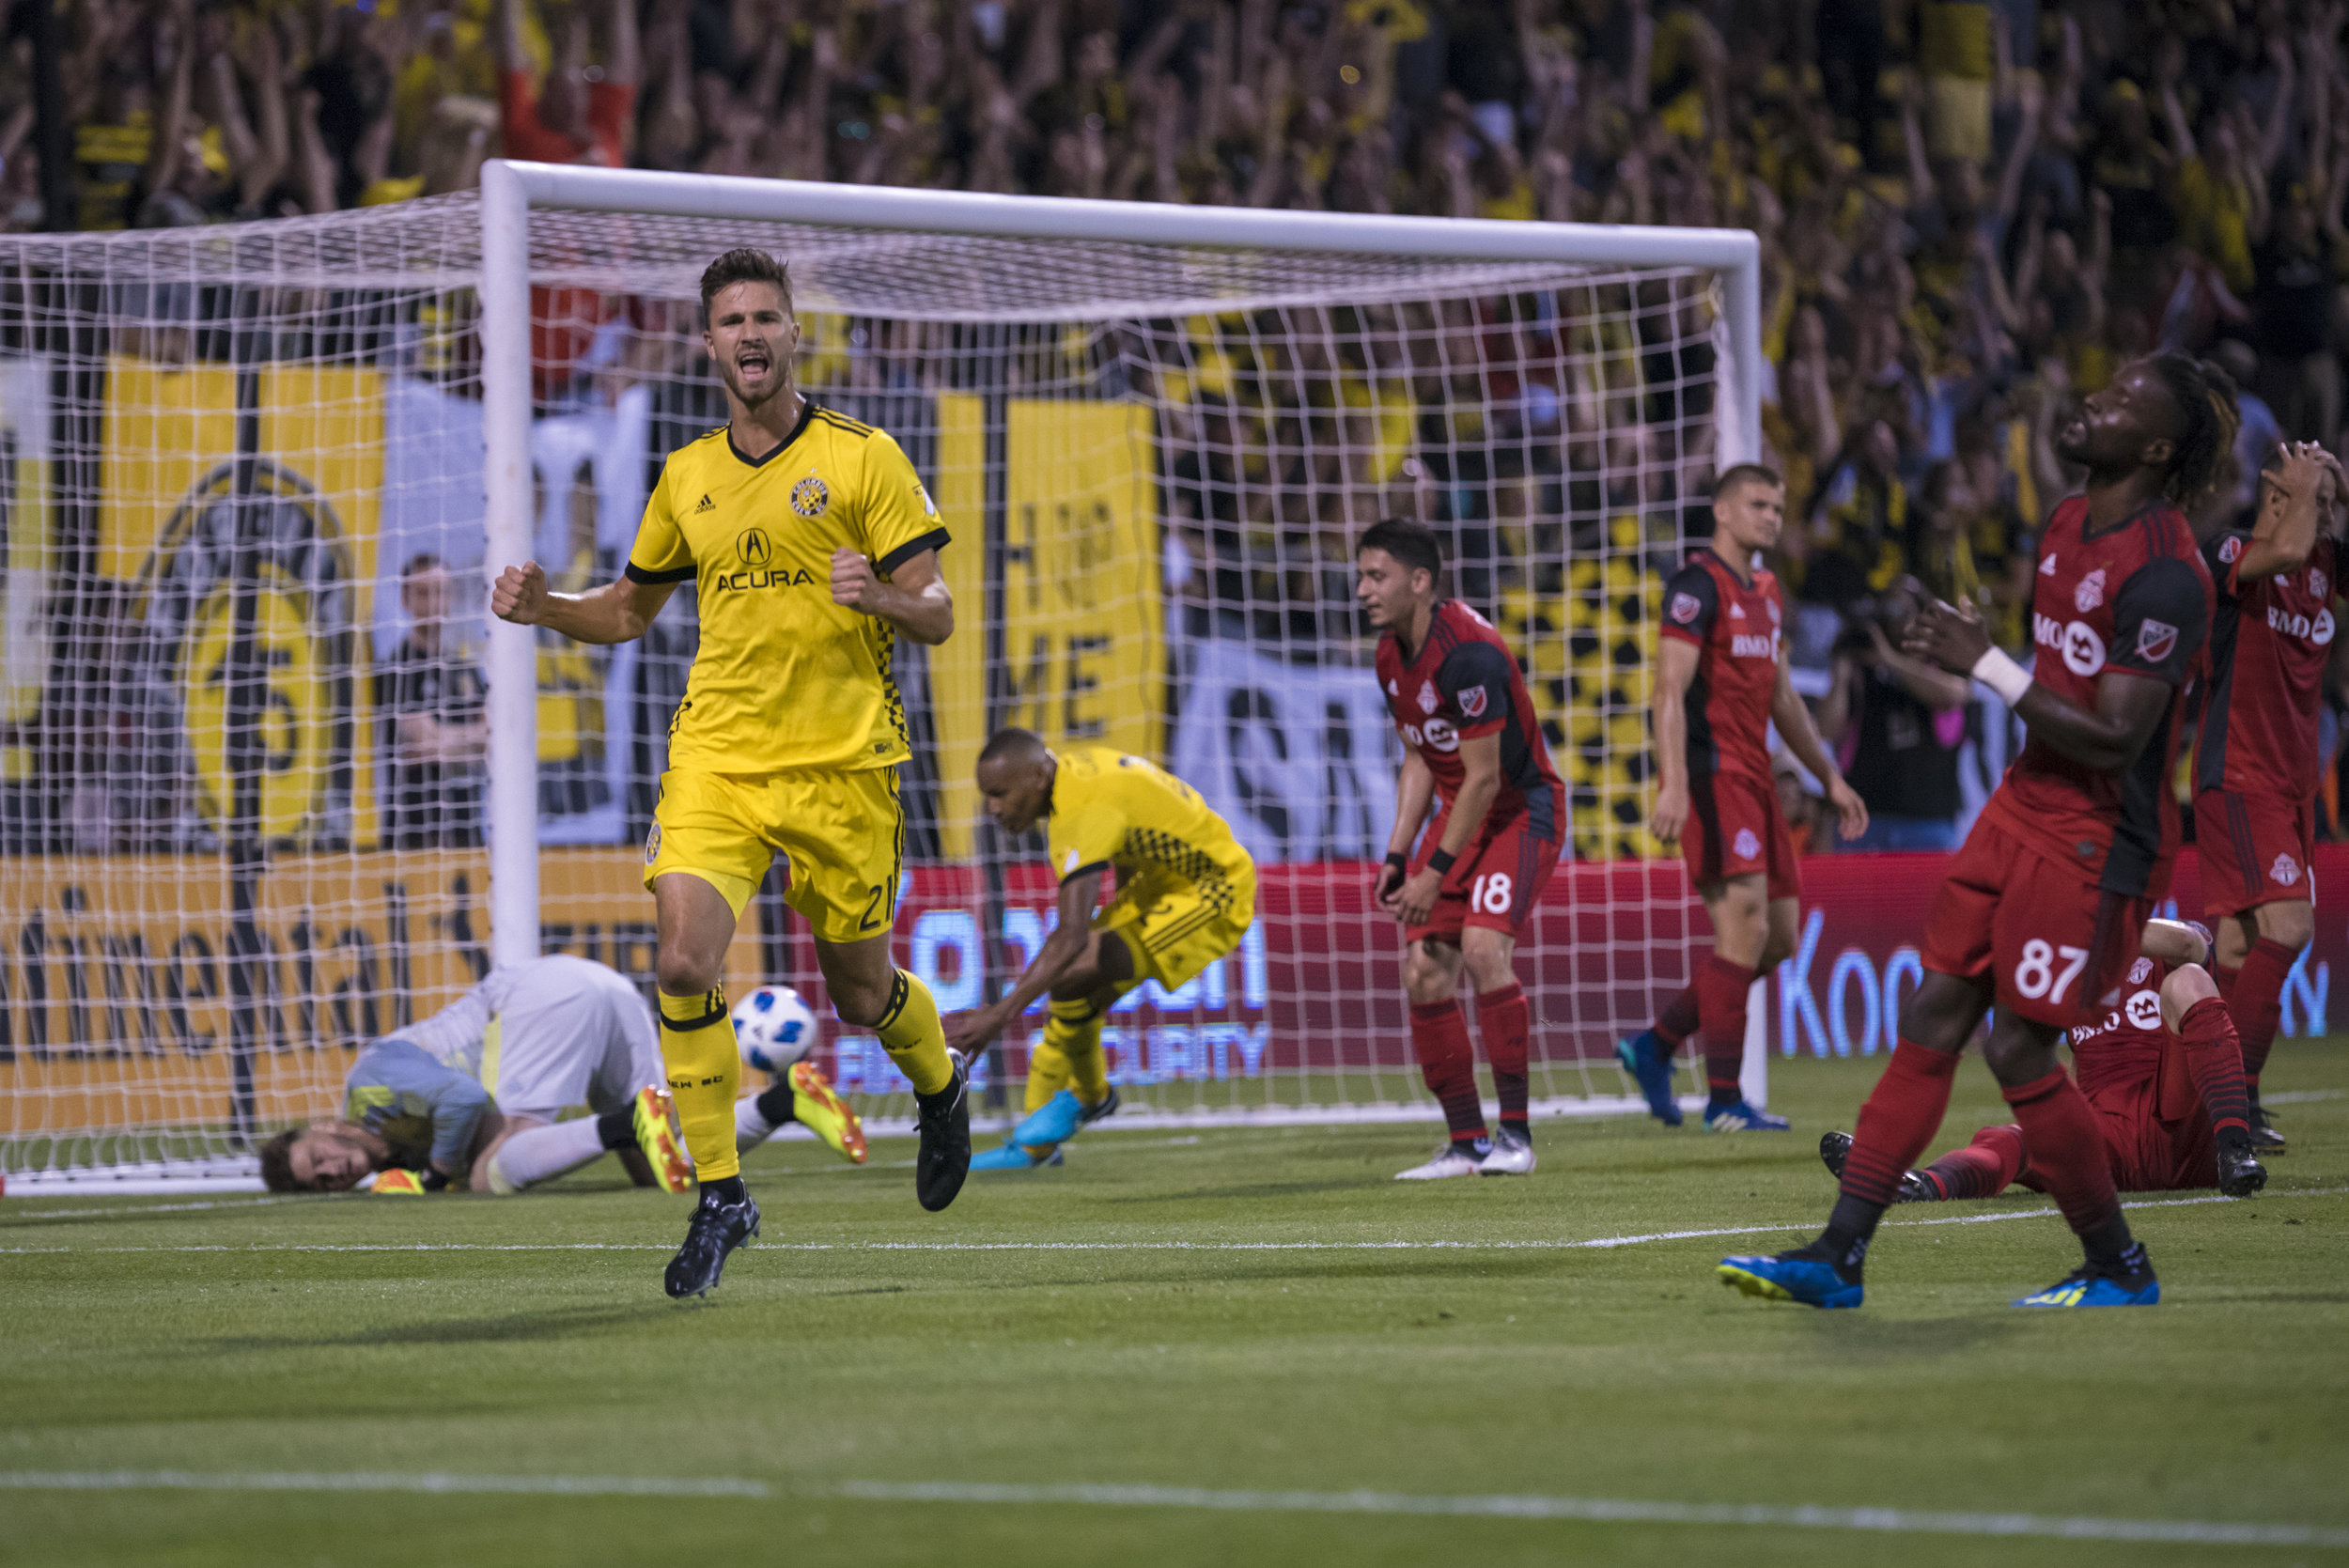 Columbus Crew defender Alex Crognale cheers as he scores his first ever Major League Soccer goal in the game against Toronto on June 2, 2018 at Mapfre Stadium in Columbus, Ohio.